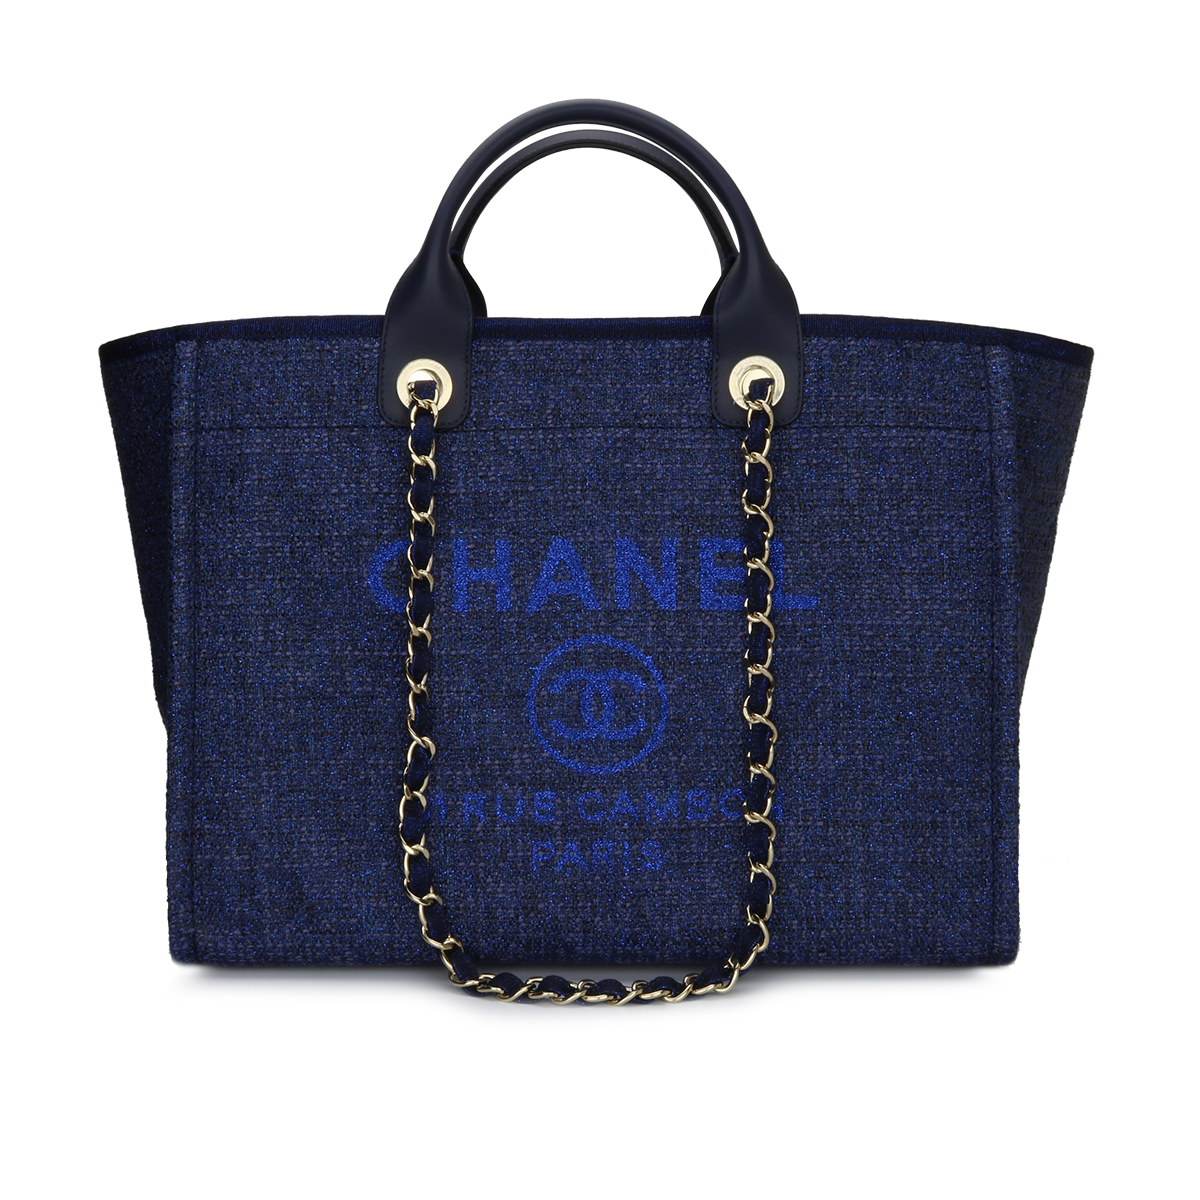 e4199c498e8 CHANEL Deauville Tote Large Navy Canvas Light Gold Hardware 2018